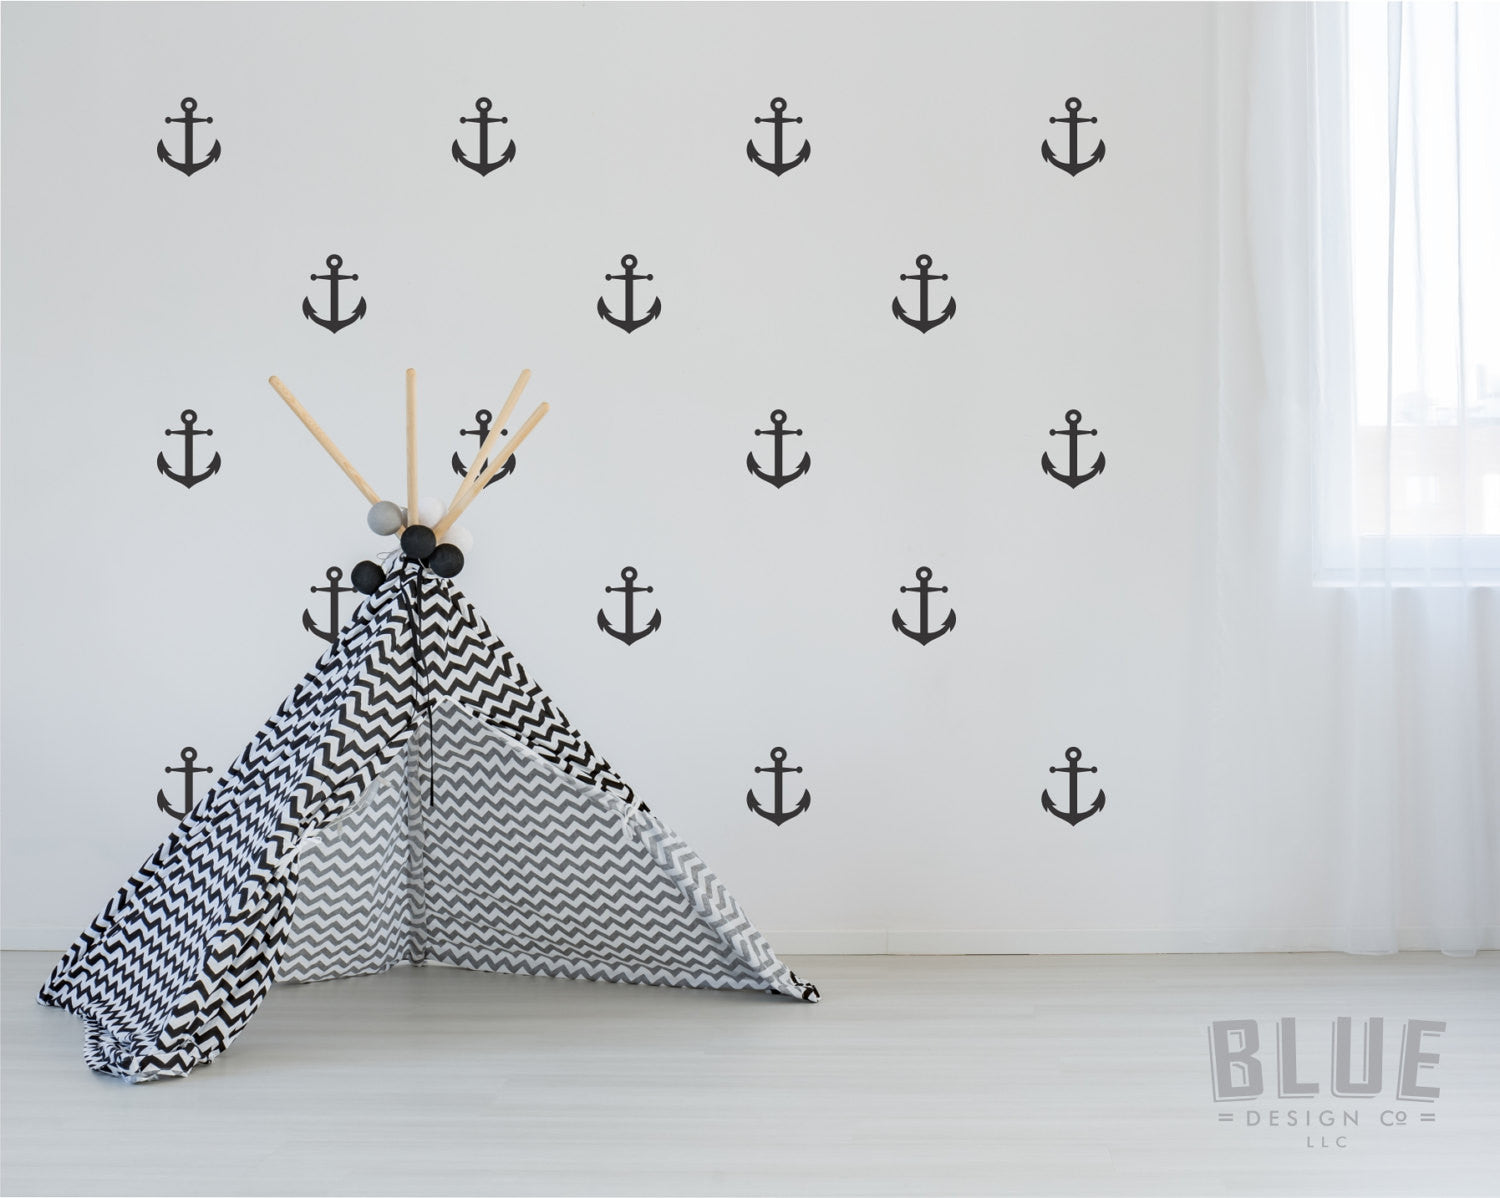 Anchor wall decals set of anchor wallpaper style wall decals anchor wall decals anchor decals amipublicfo Image collections